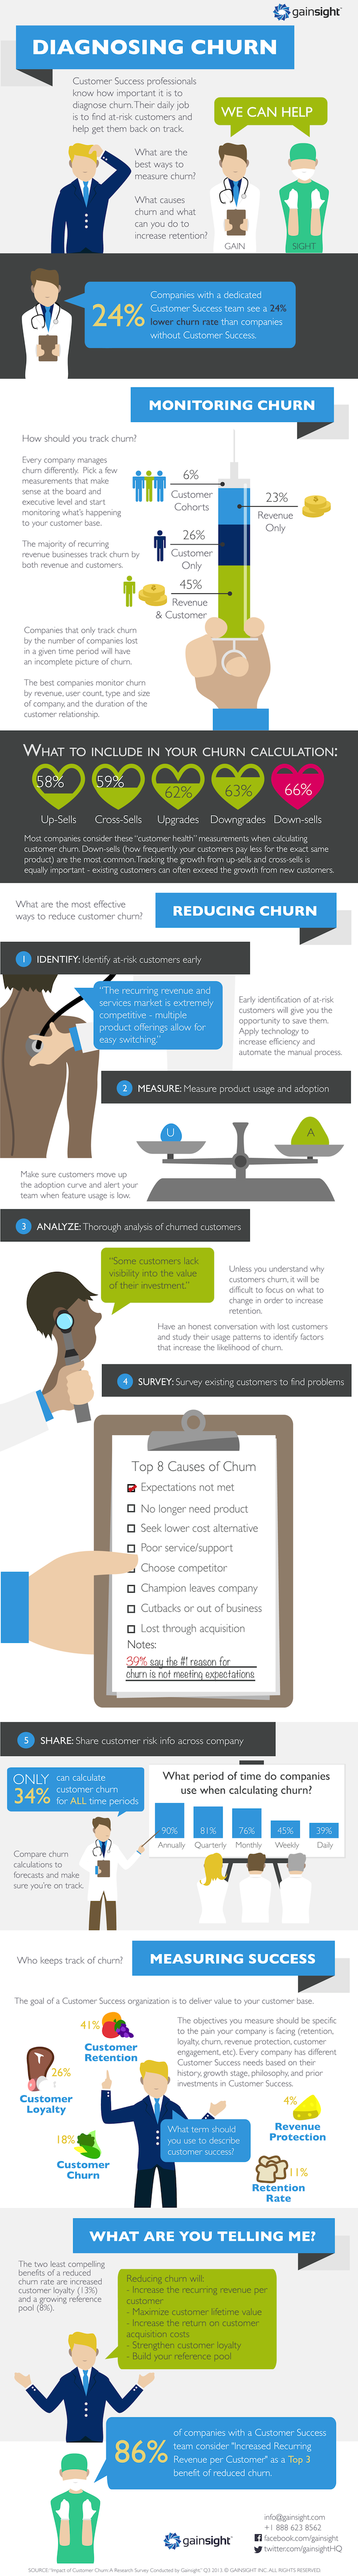 Churn Infographic from GainSight